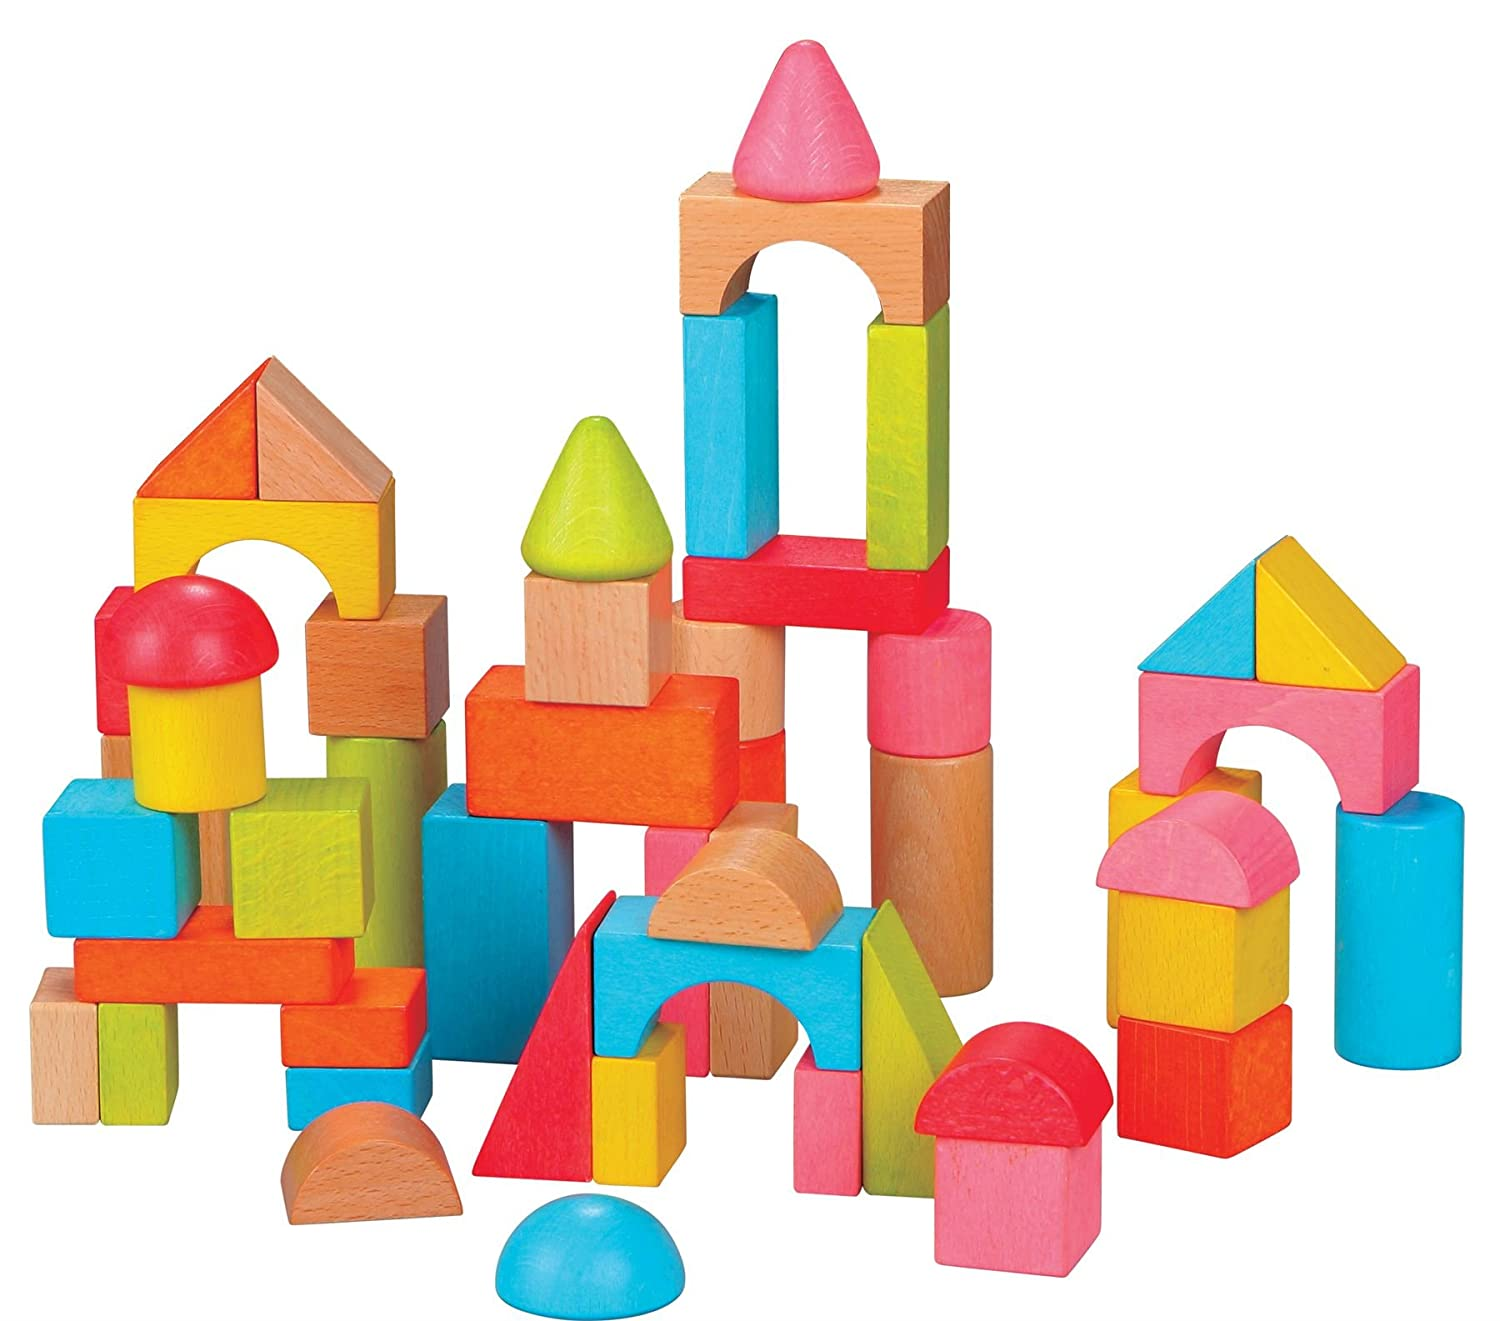 Lelin [50 Blocks] Wooden Building Shape Bricks Construction Blocks